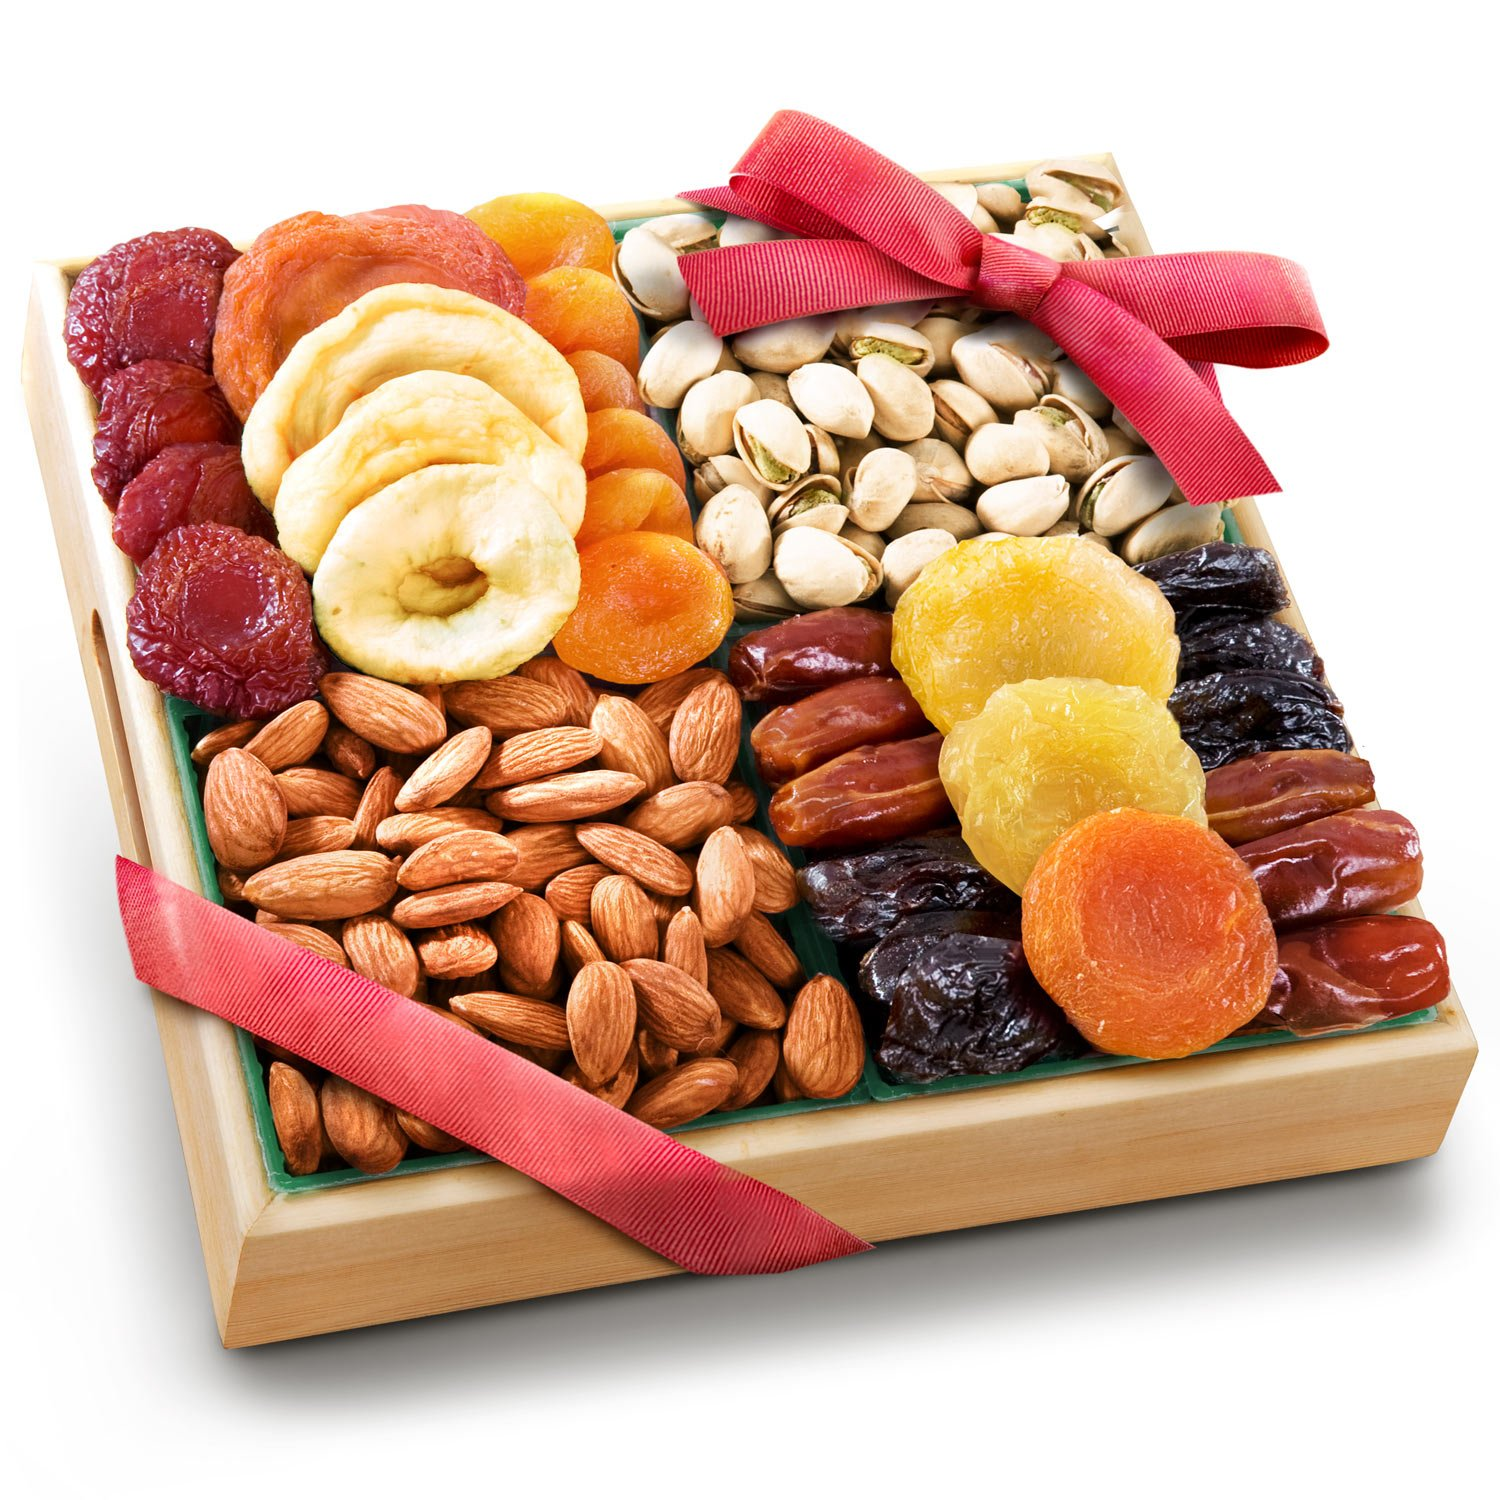 Amazon golden state fruit pacific coast classic dried fruit amazon golden state fruit pacific coast classic dried fruit tray gift gourmet fruit gifts grocery gourmet food negle Images